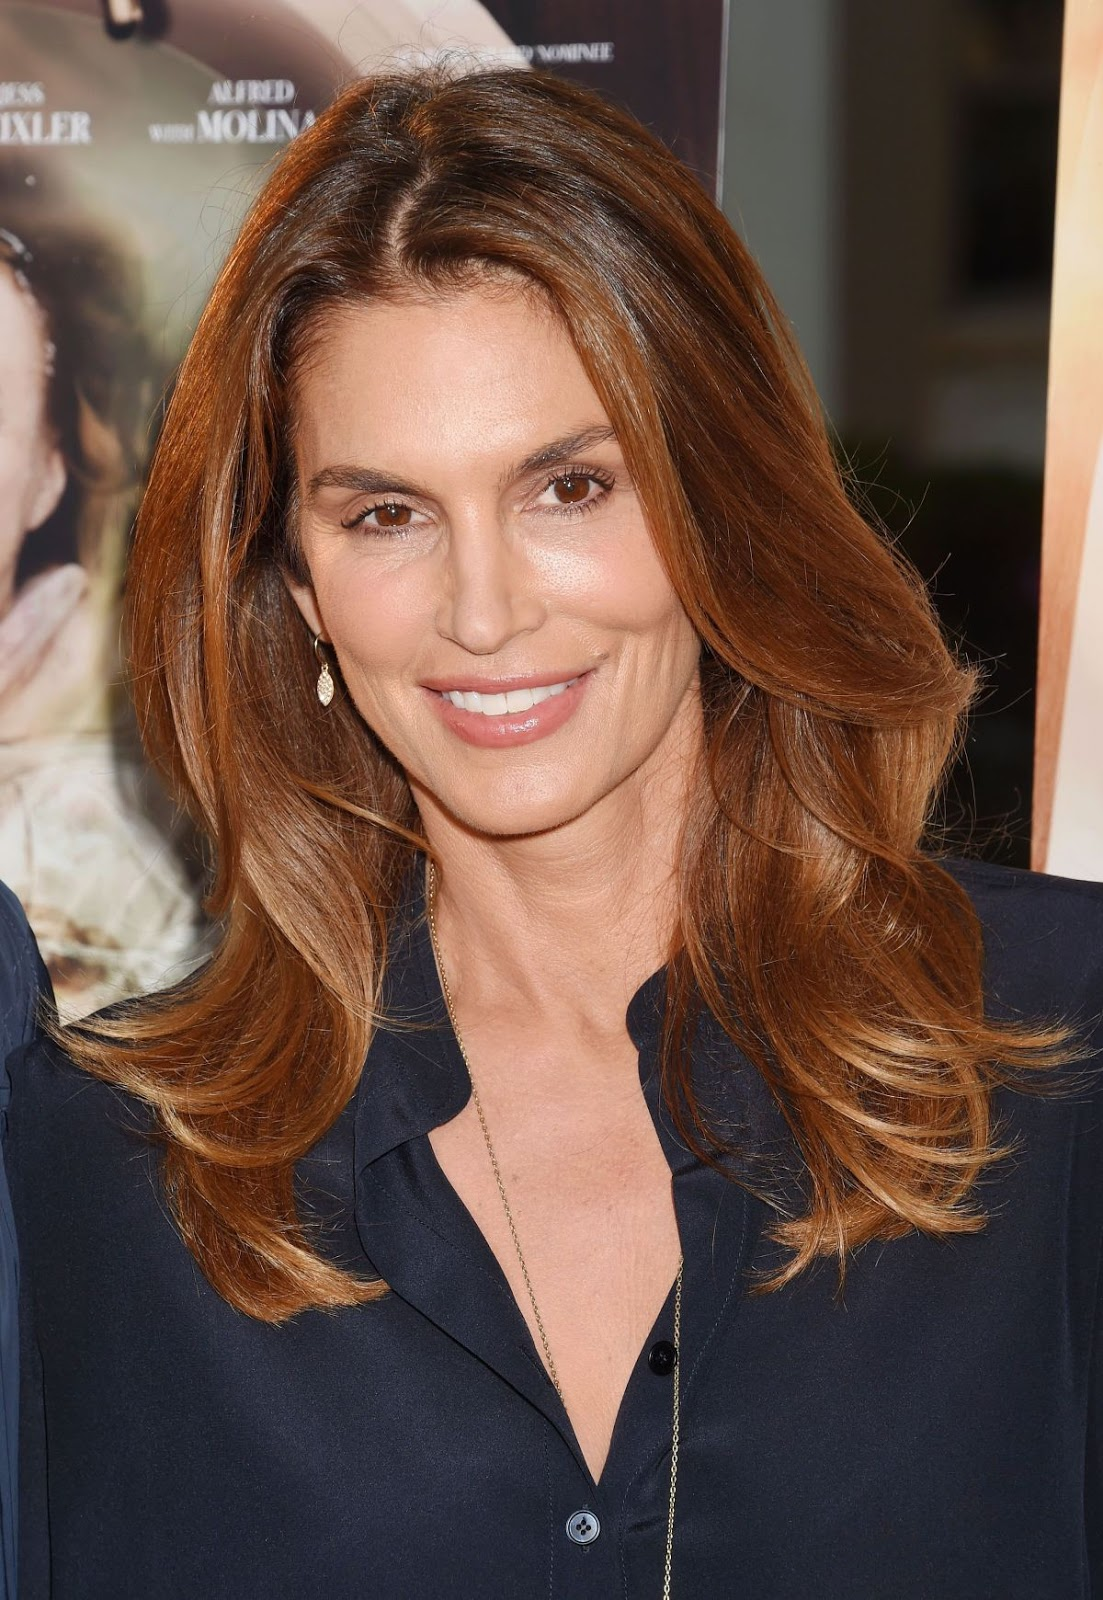 HD Photos of Lip Sync Battle actress Cindy Crawford at Sister Cities Premiere In Hollywood